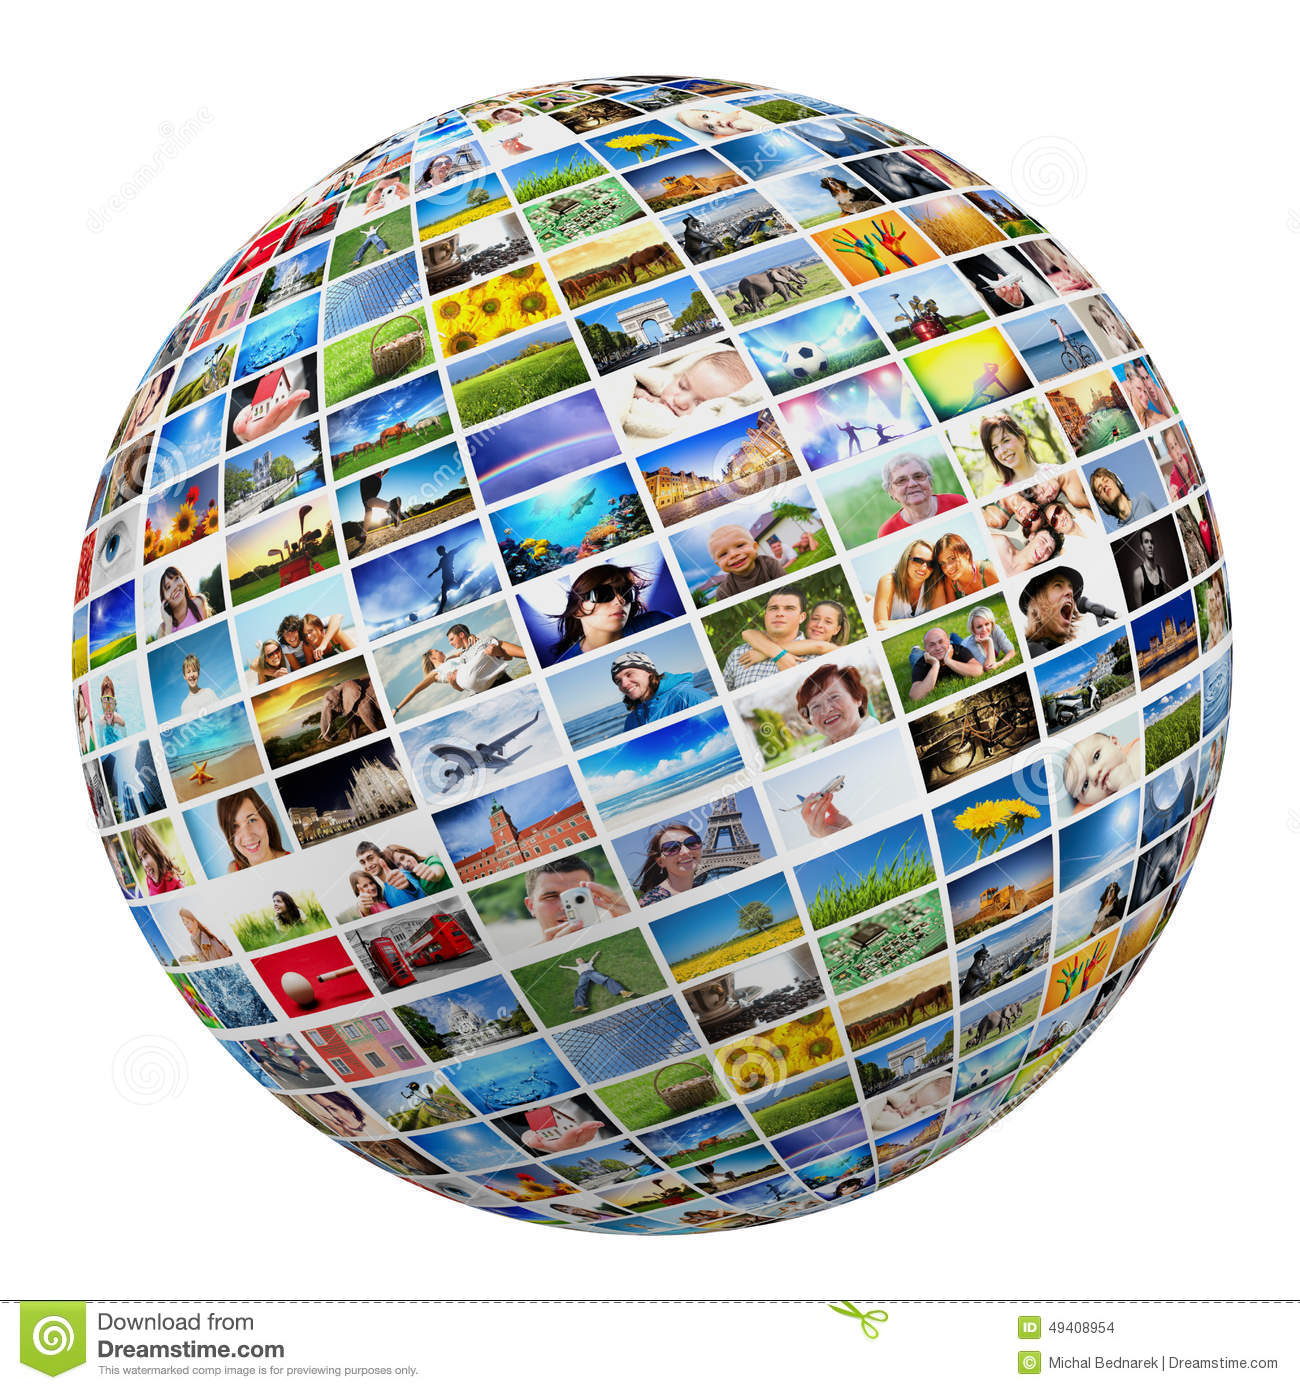 342 TV global channels with social media channels TV global for sale